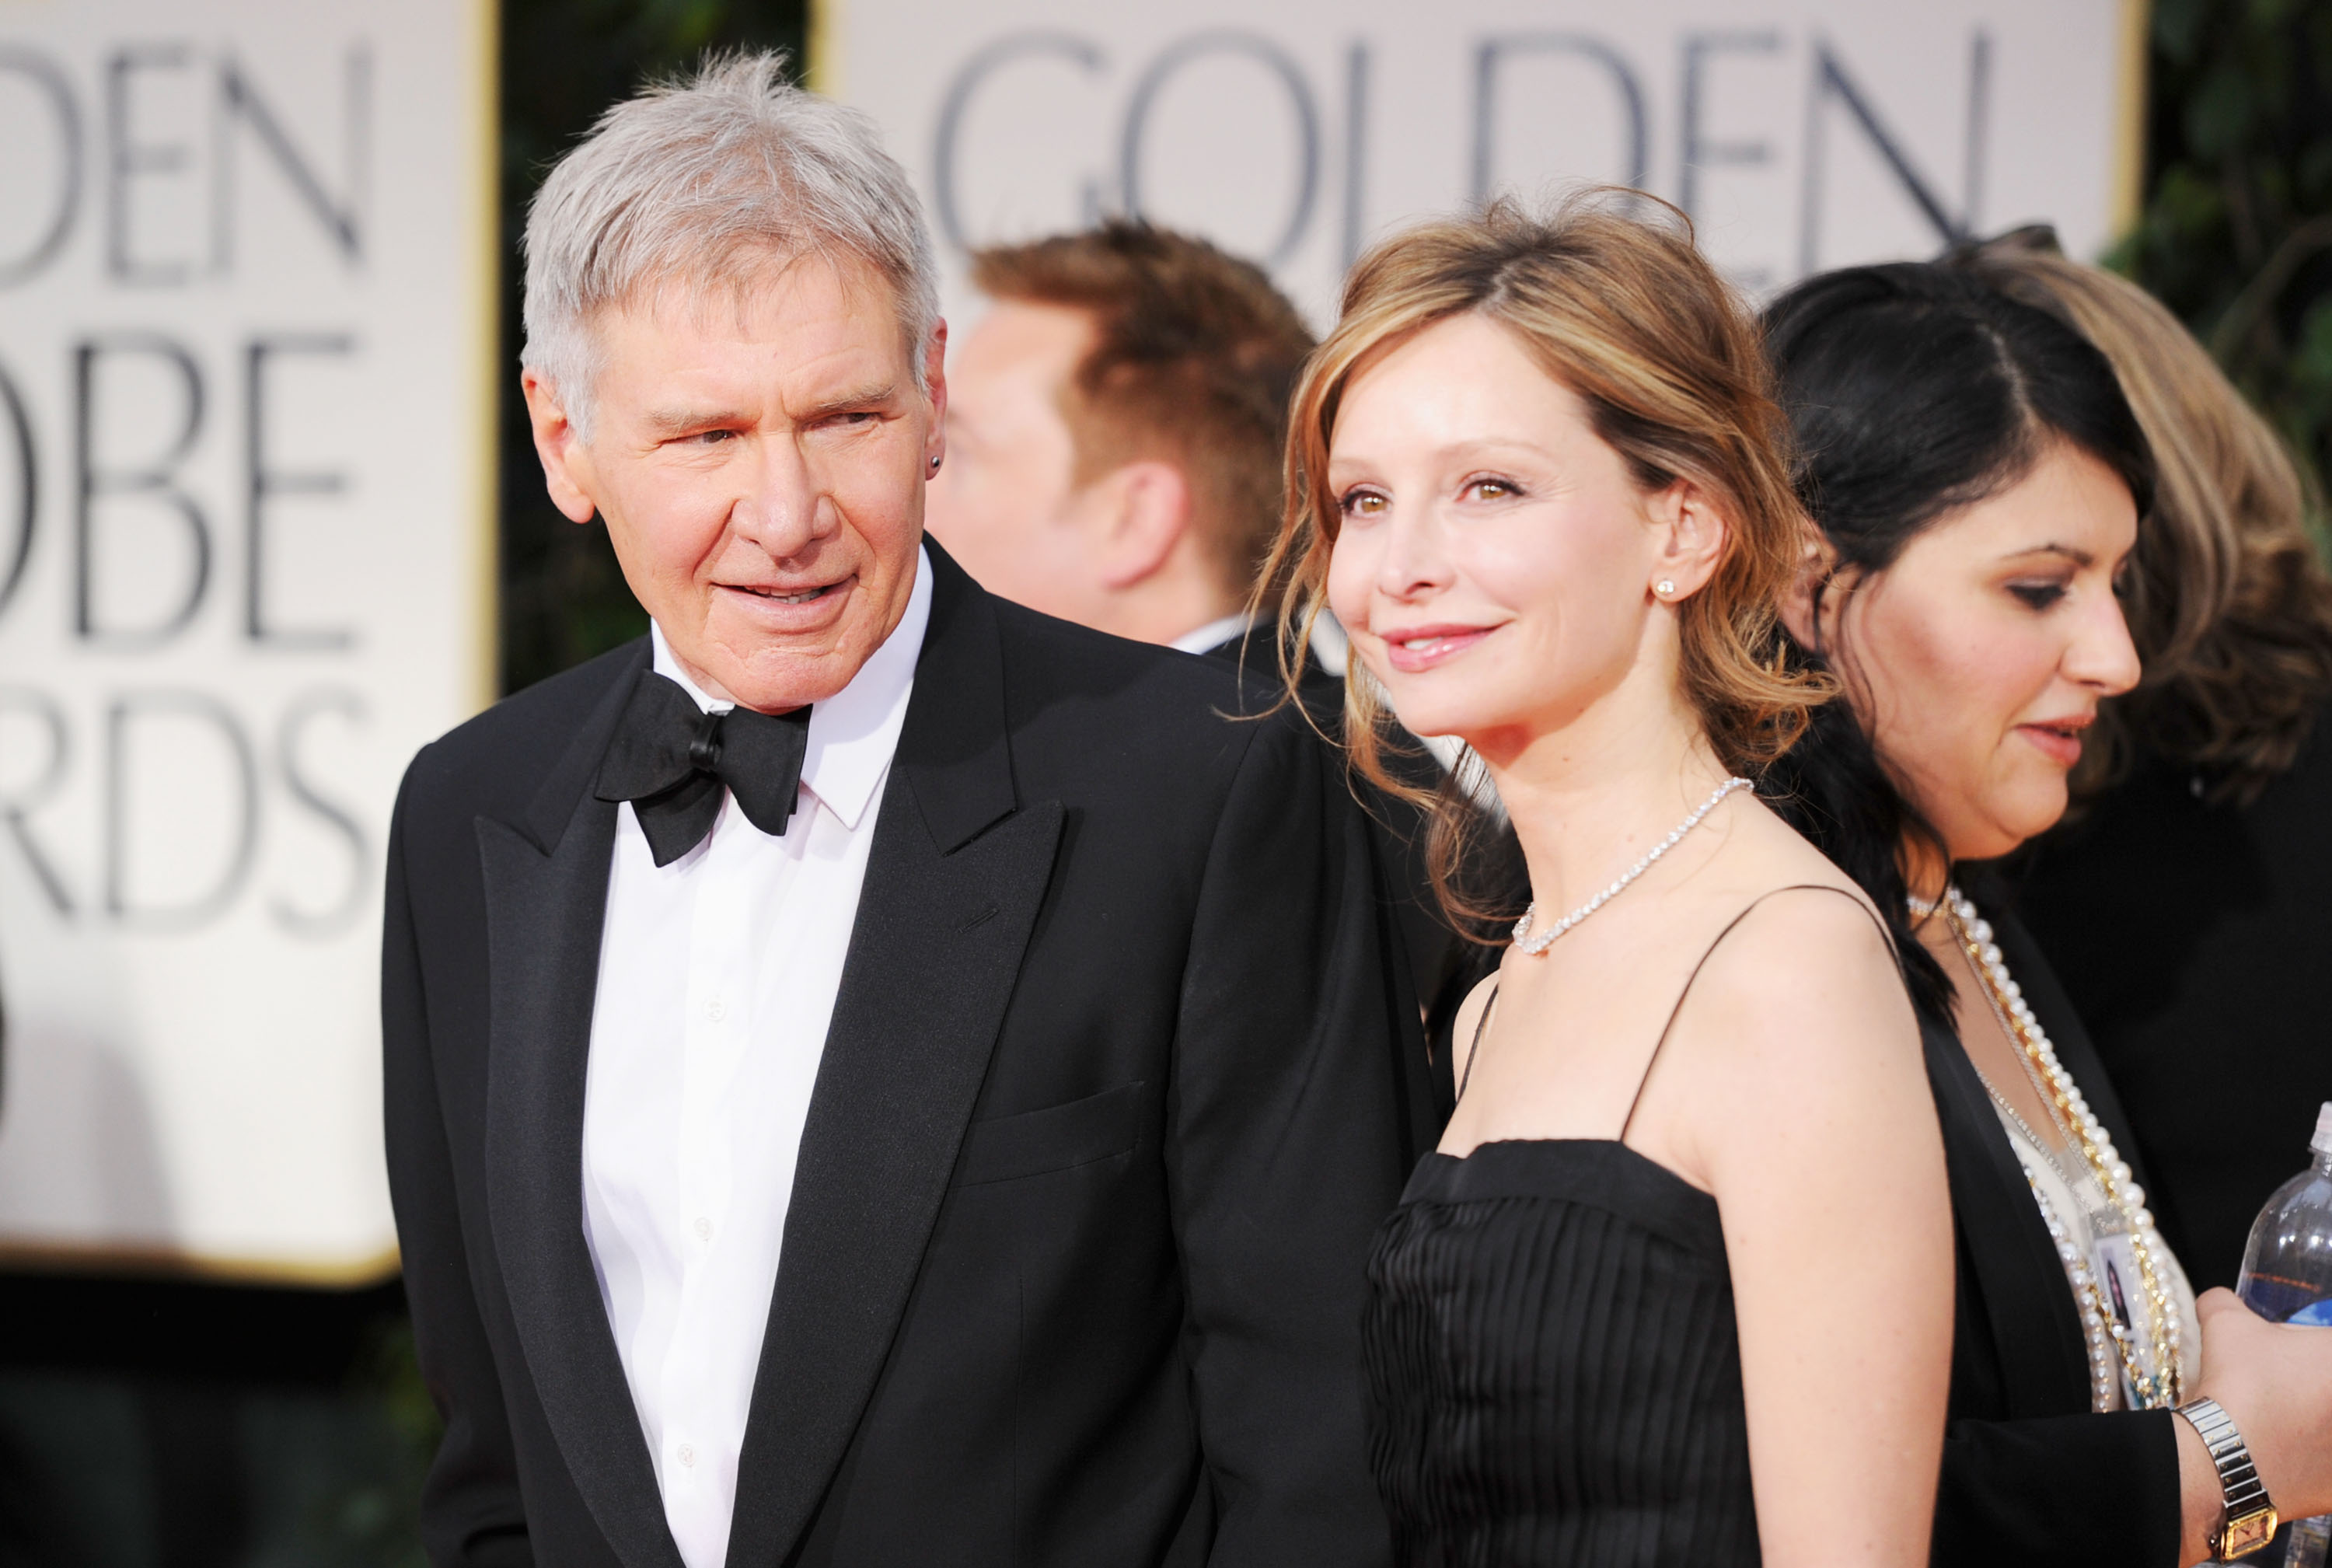 Actors Harrison Ford and Calista Flockhart arrive at the 69th Annual Golden Globe Awards held at the Beverly Hilton Hotel on January 15, 2012 in Beverly Hills, California. (Photo by Frazer Harrison/Getty Images)